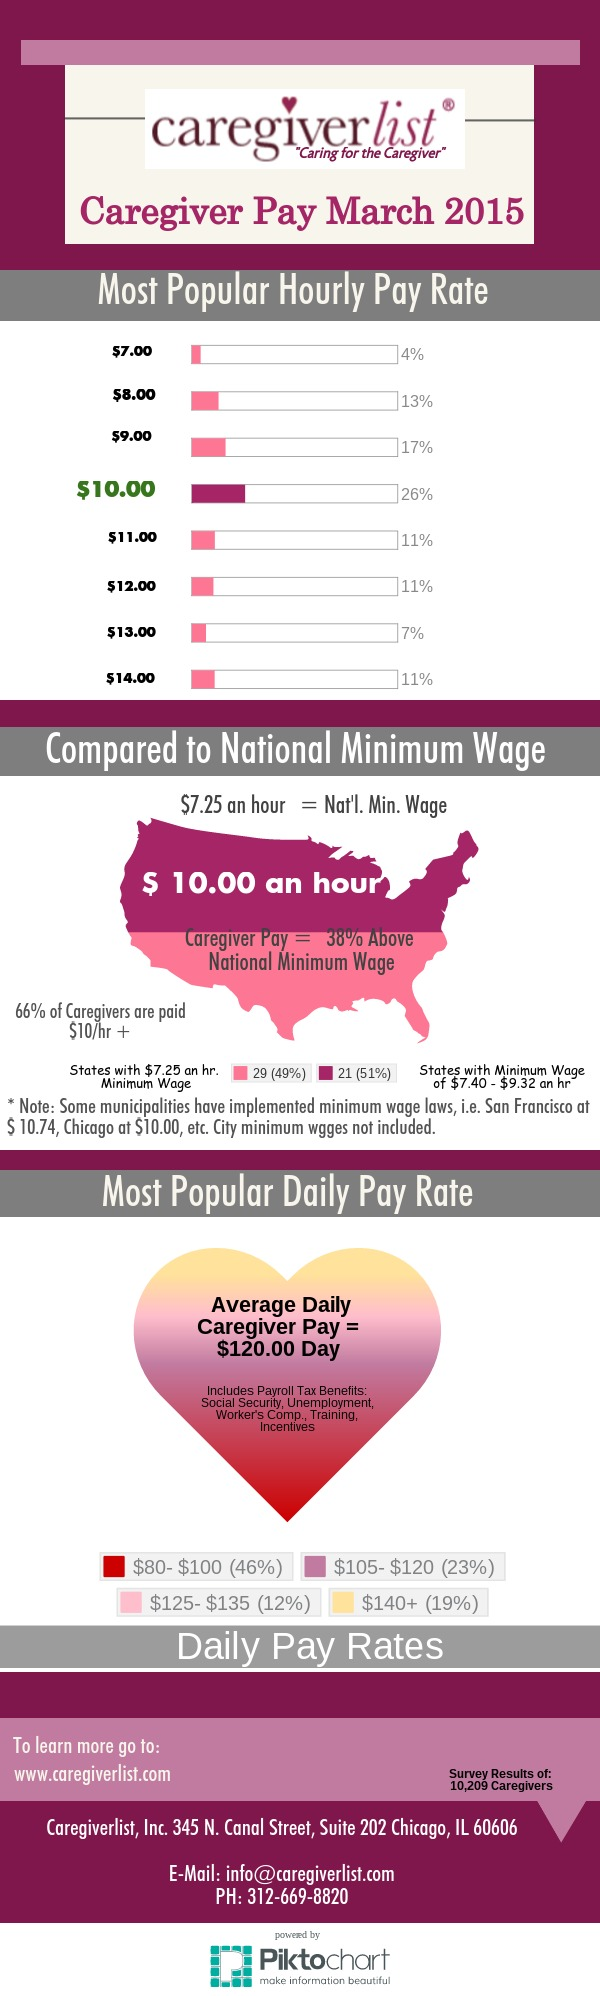 Caregiver Pay Rates March 2015